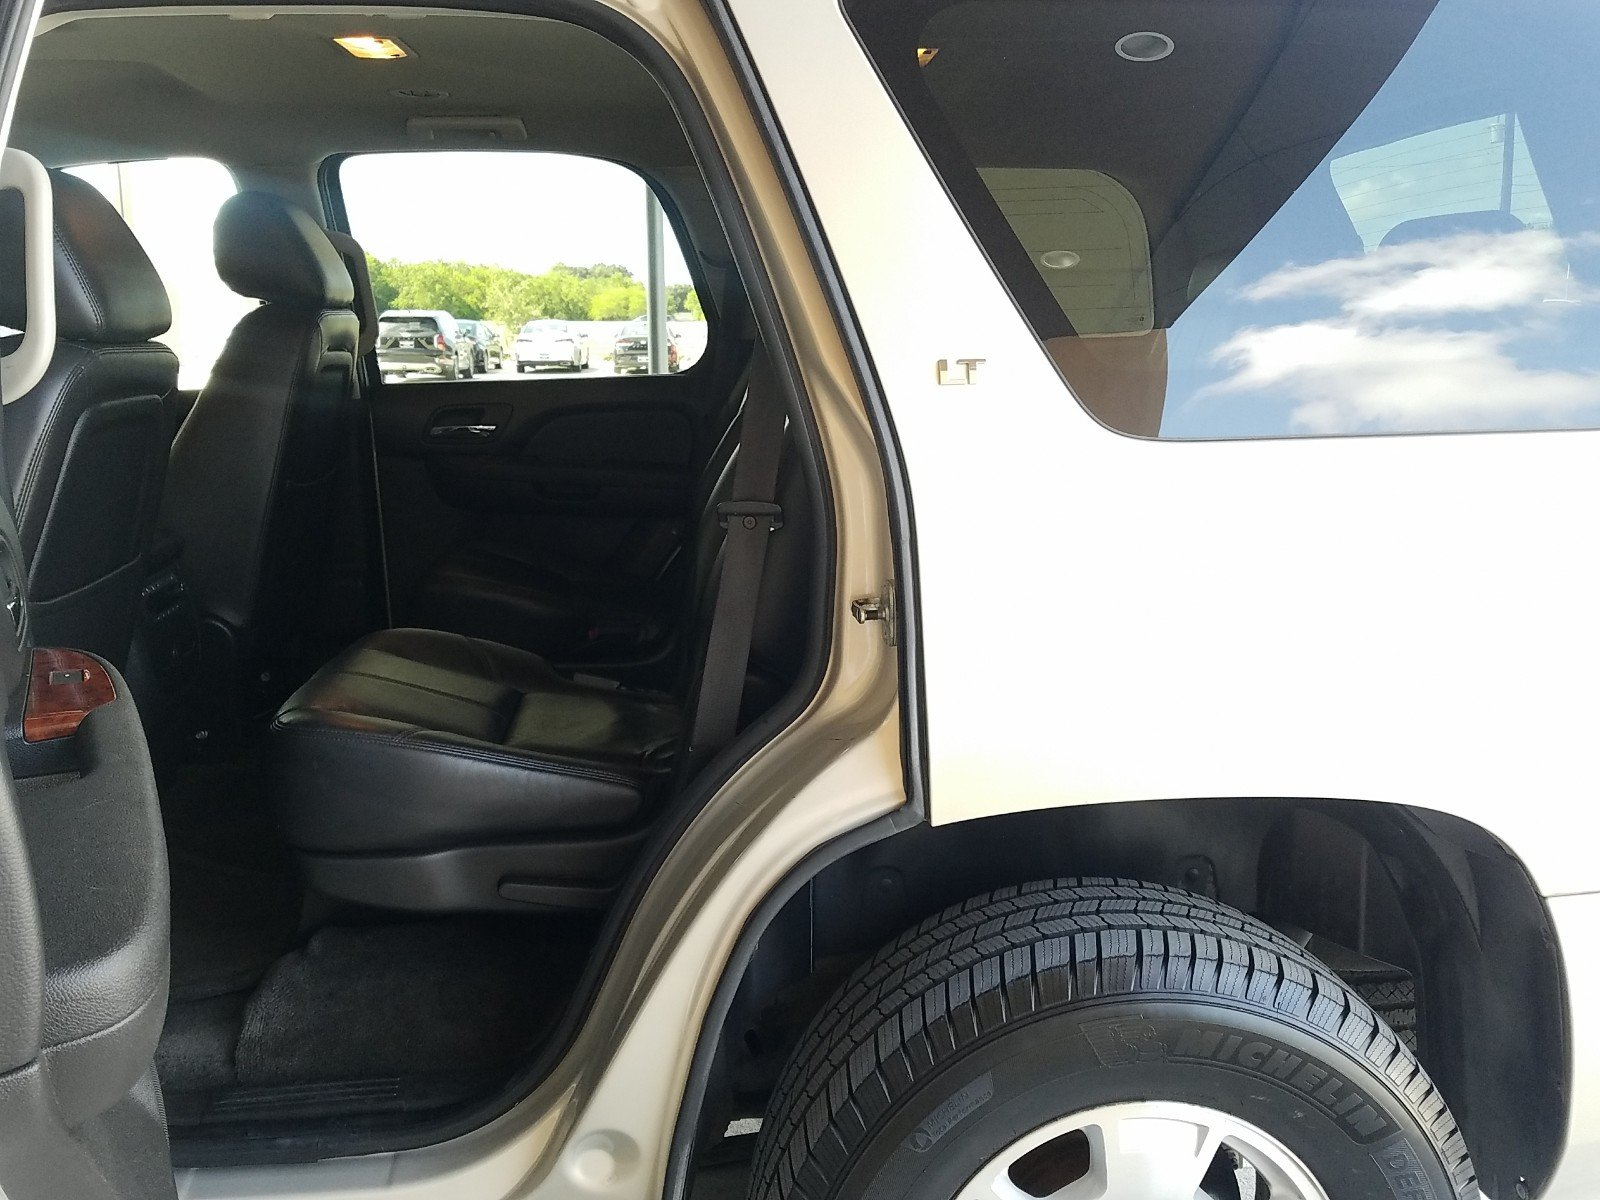 Used 2011 Chevrolet Tahoe For Sale at Brookshire Hyundai